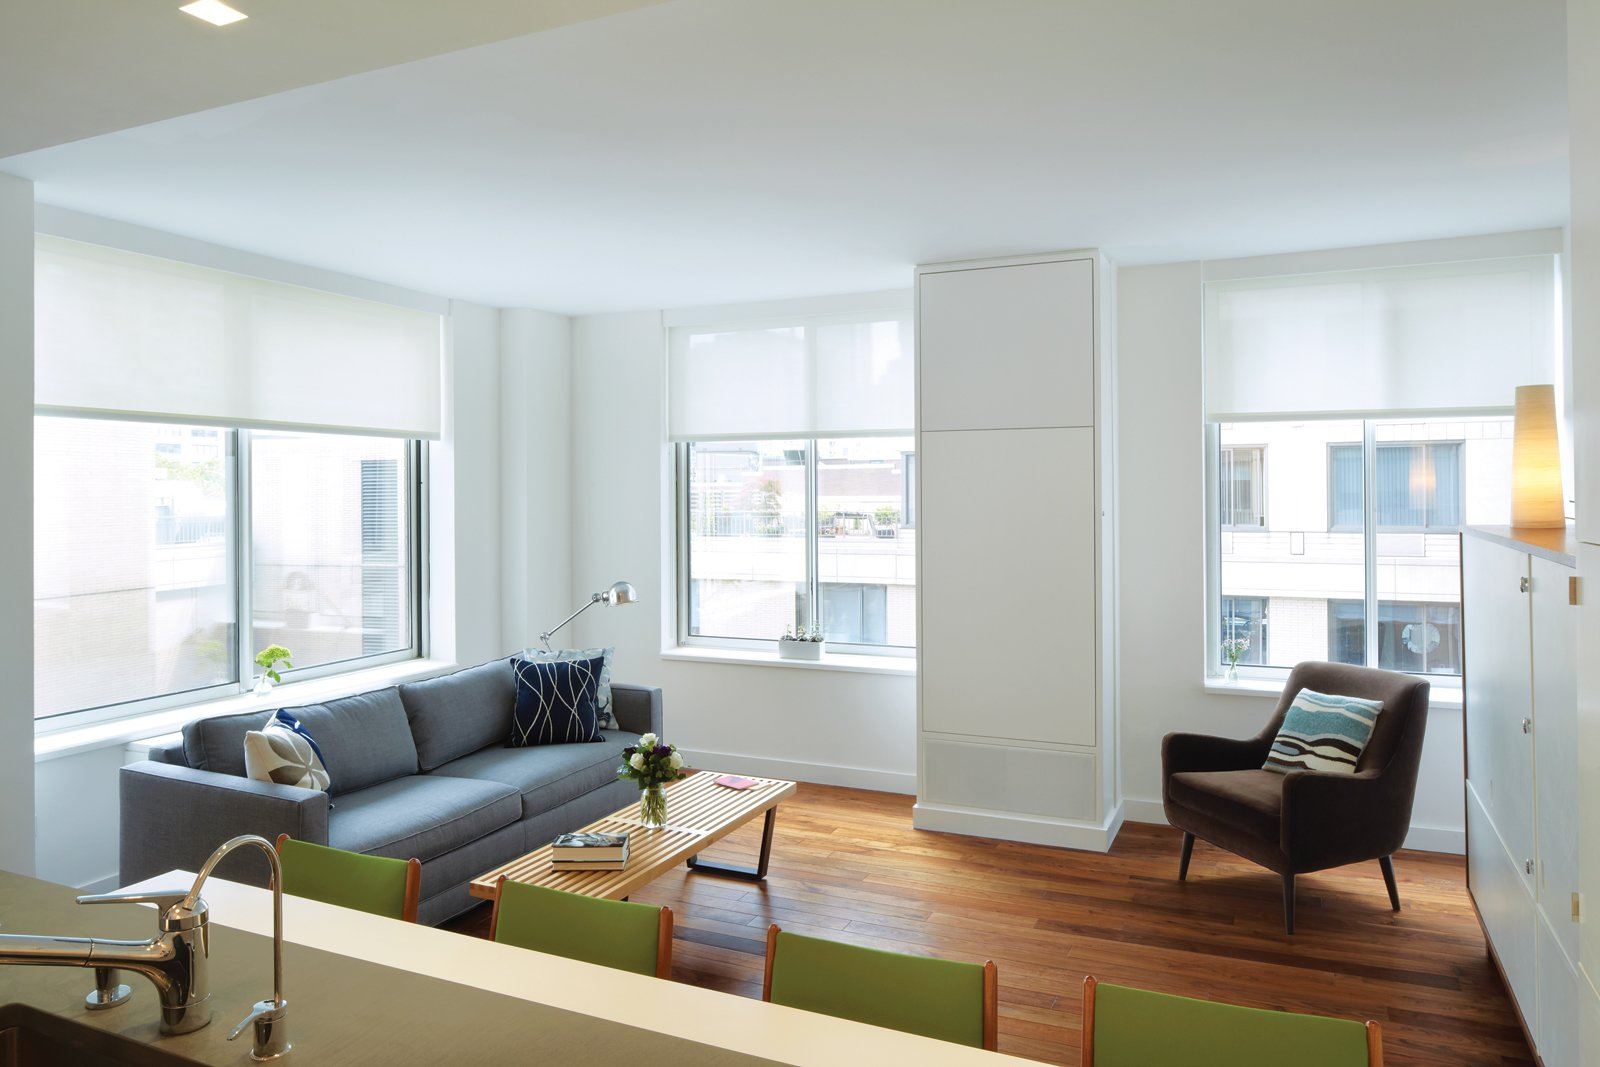 Living Room, Medium Hardwood Floor, Sofa, Chair, Lamps, Coffee Tables, Storage, Recessed Lighting, Table Lighting, Stools, and Bar Like a Murphy bed, the dining table tucks into the wall when not in use.  Photo 3 of 11 in These 10 Tiny Apartments in New York City Embrace Compact Living from Hide and Eat